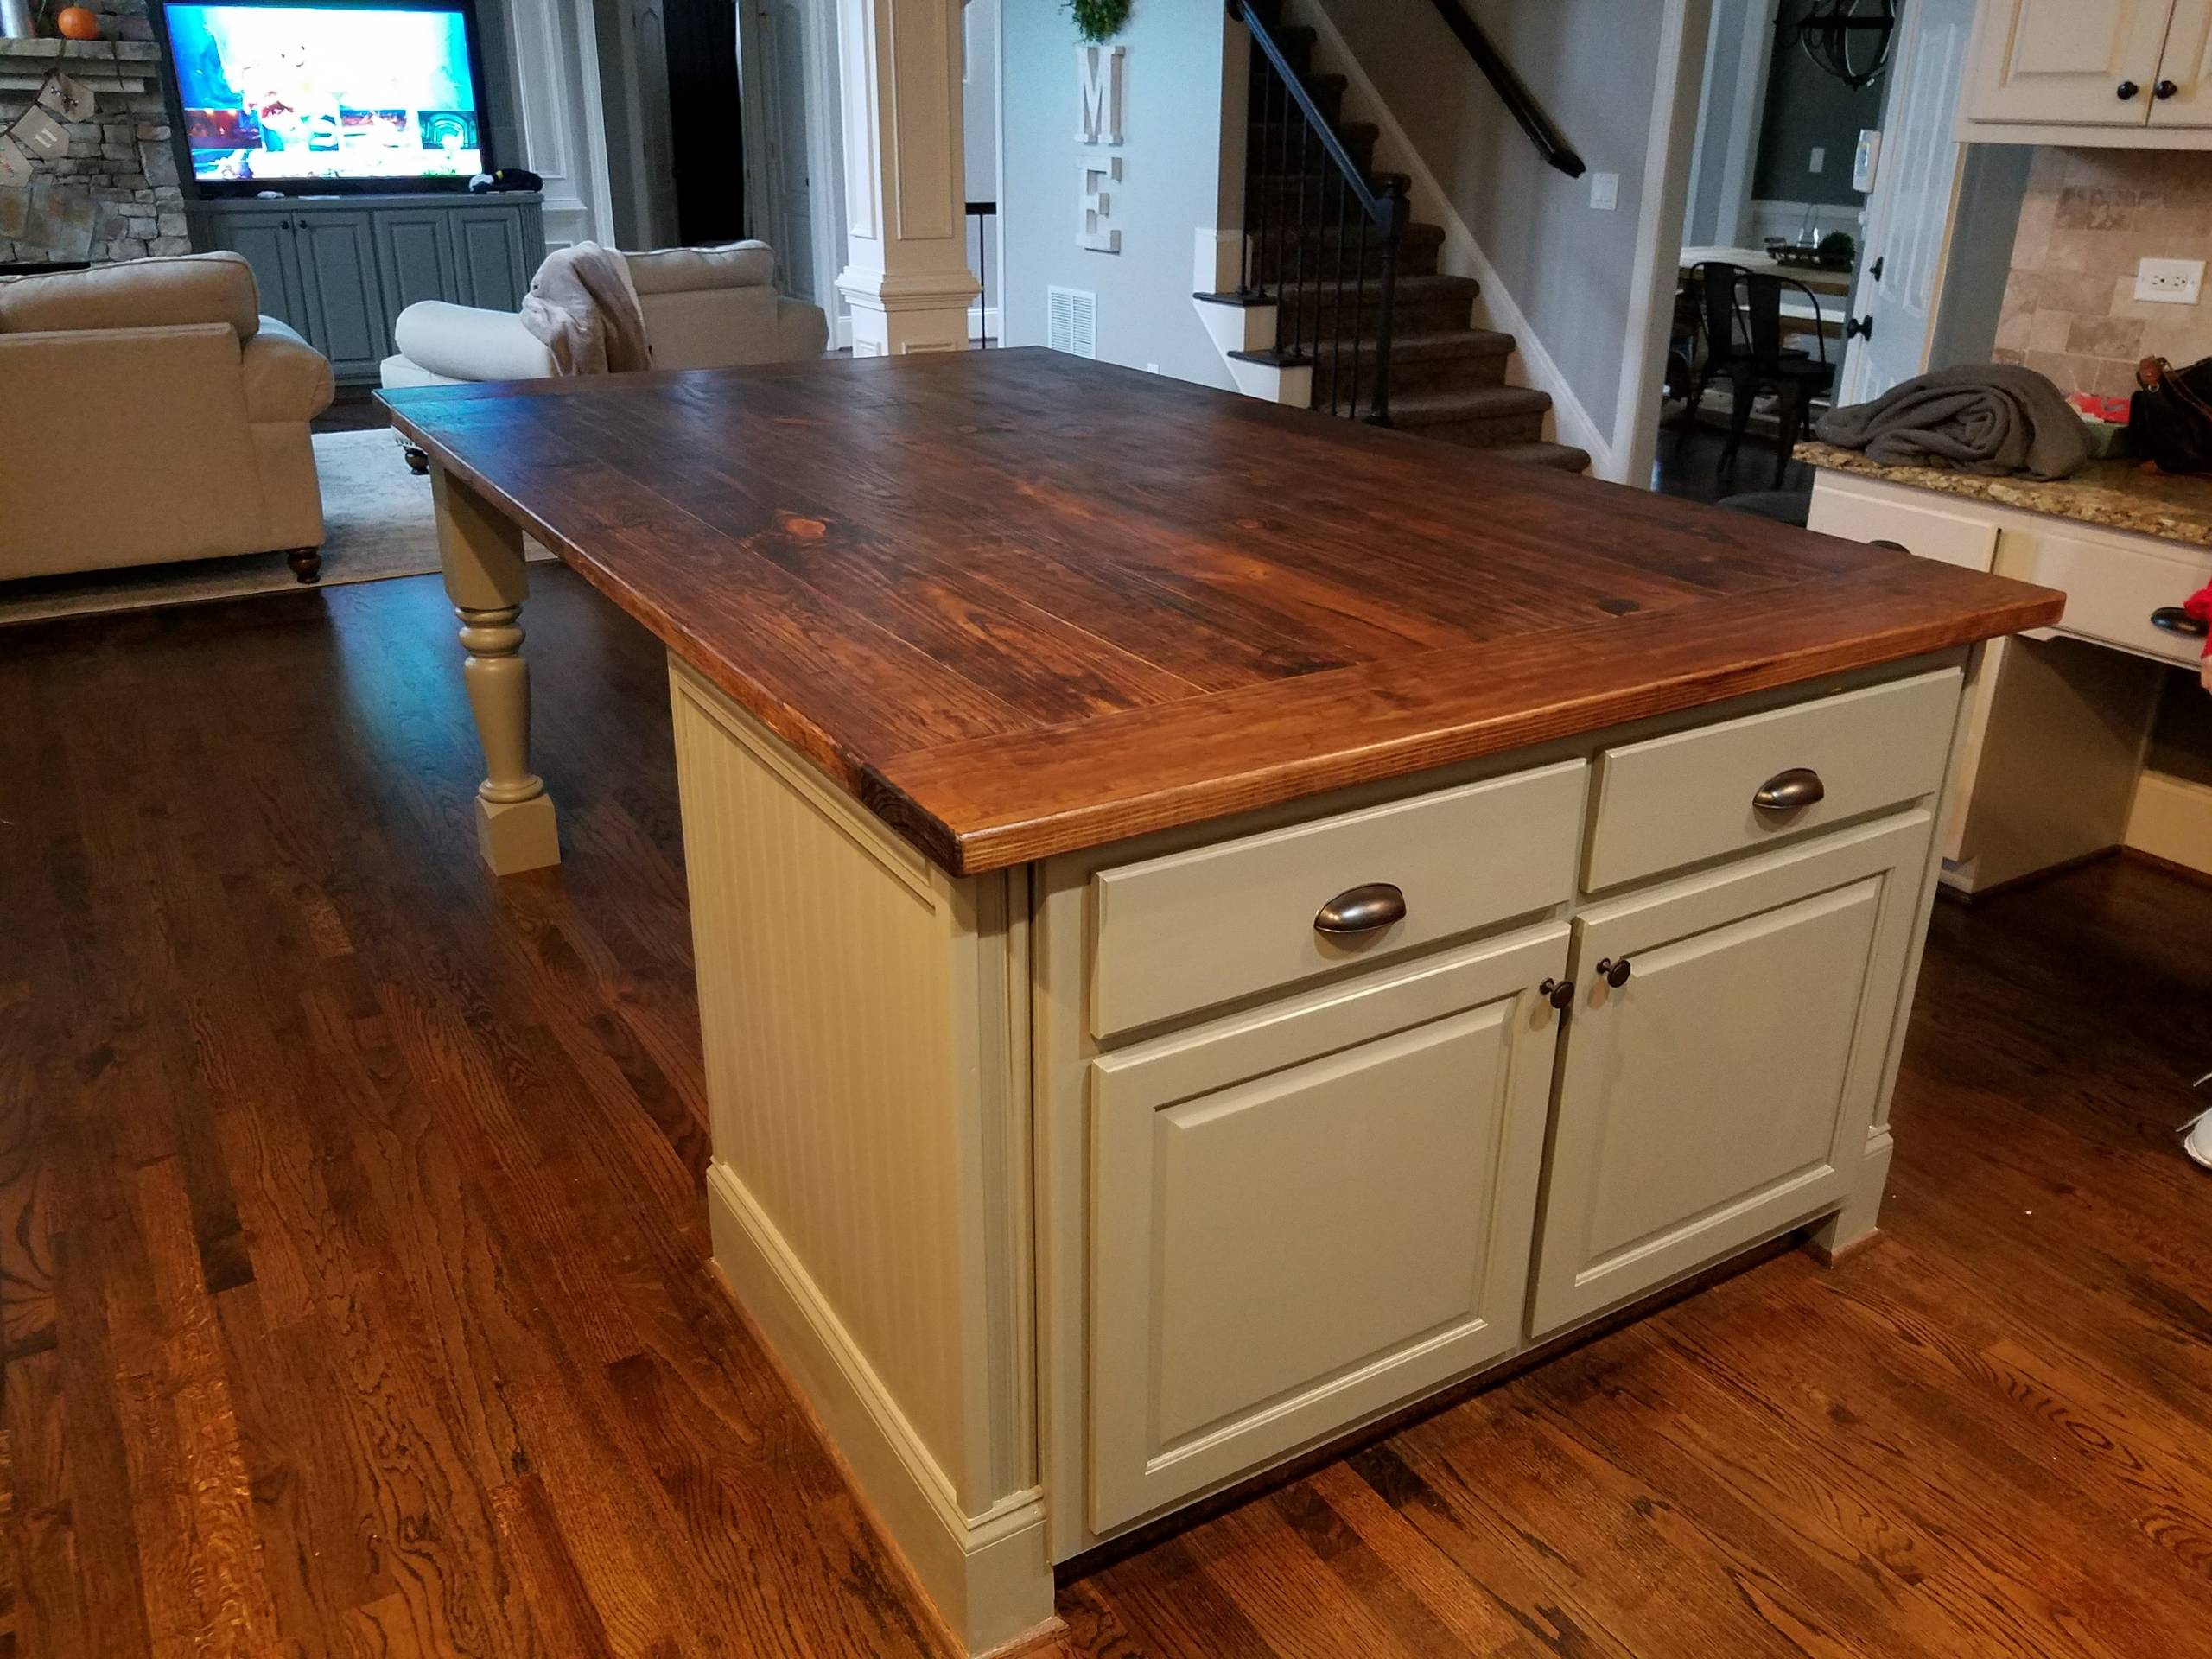 Table build and installation